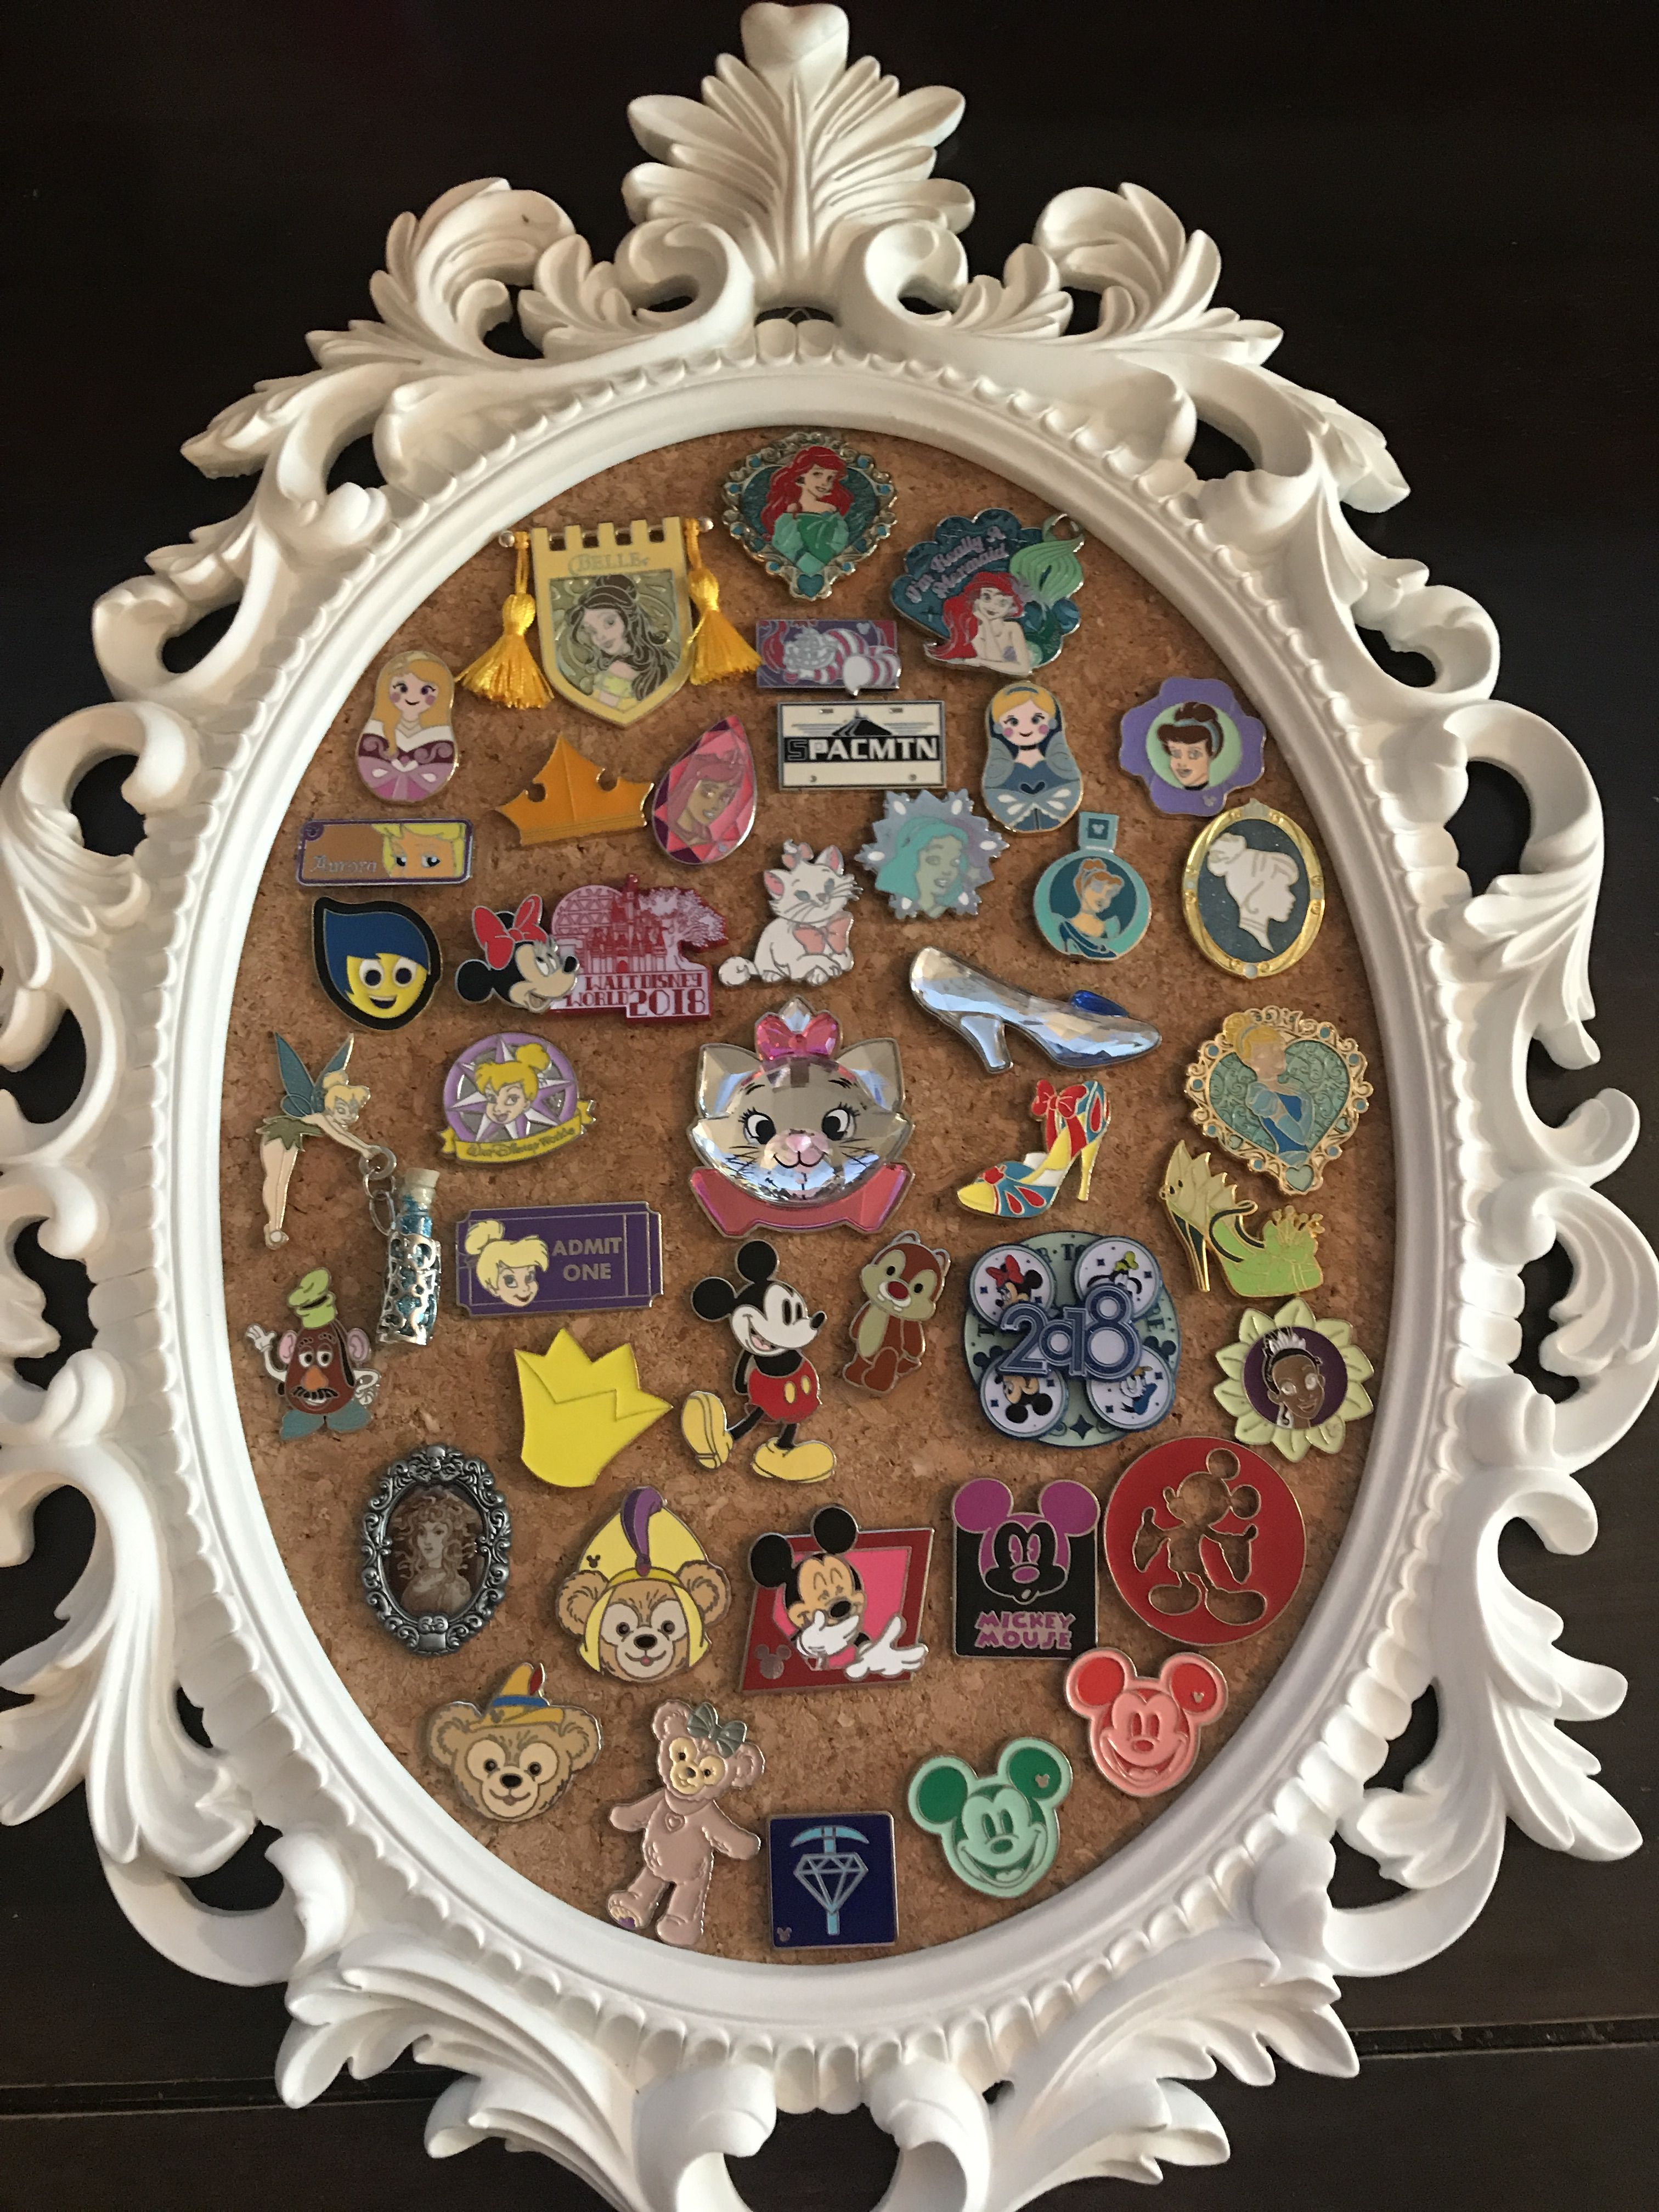 Pin by Julie Esposito on Disney Trading Pins   Disney ...